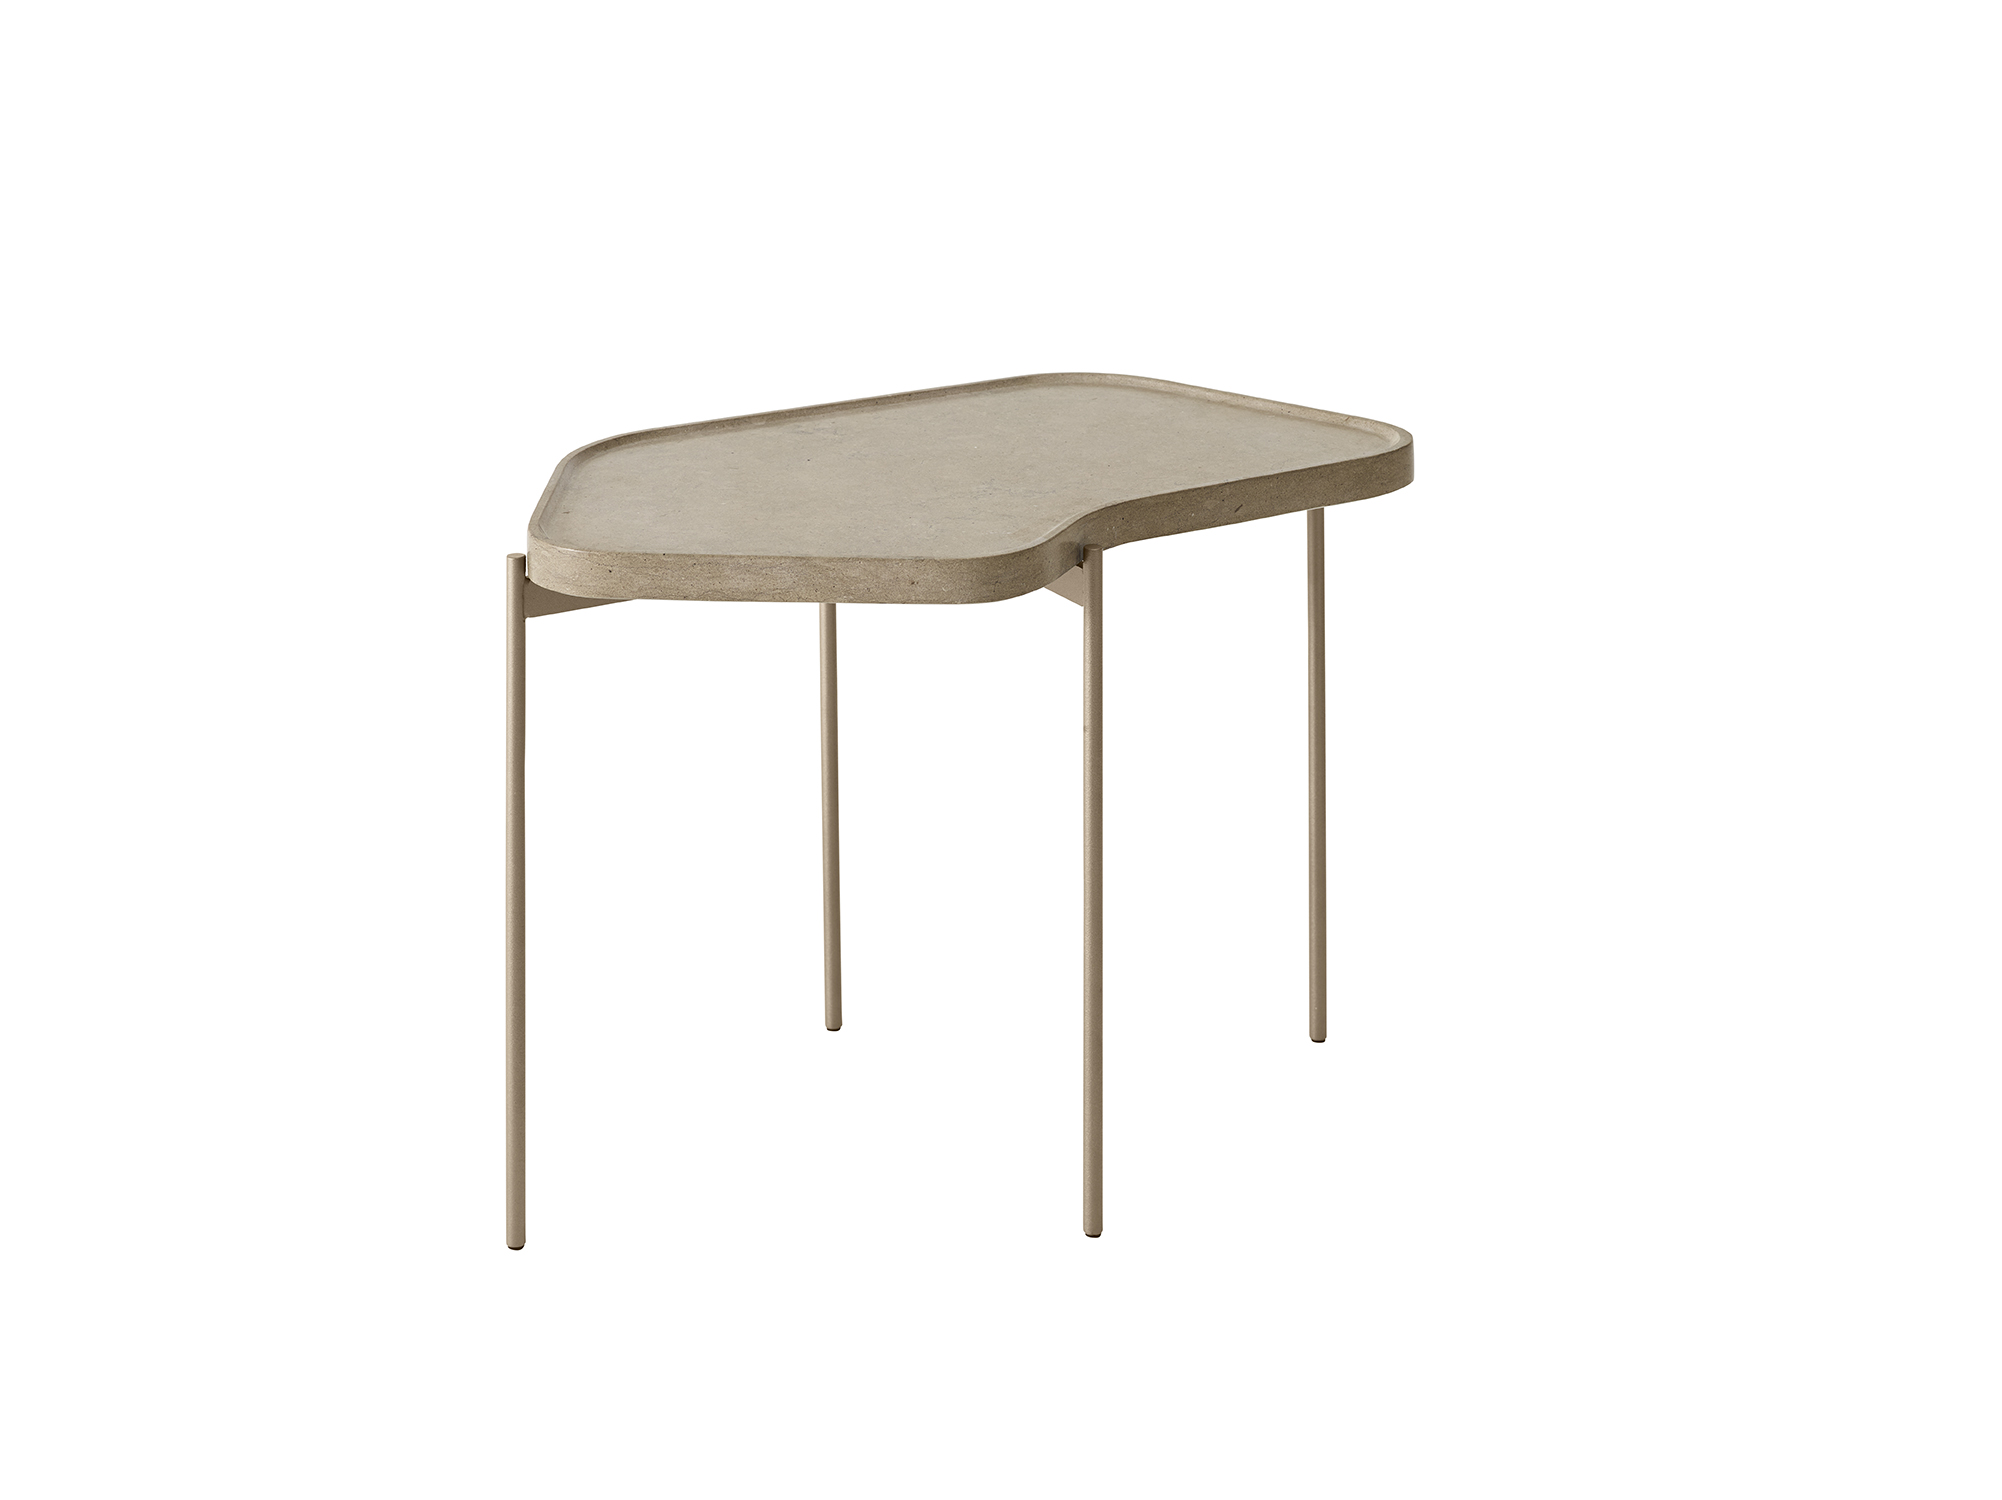 Pond sidetable for Swedese - Exhibiting at Swedese, Stockholm Furniture Fair, Stand A15:28